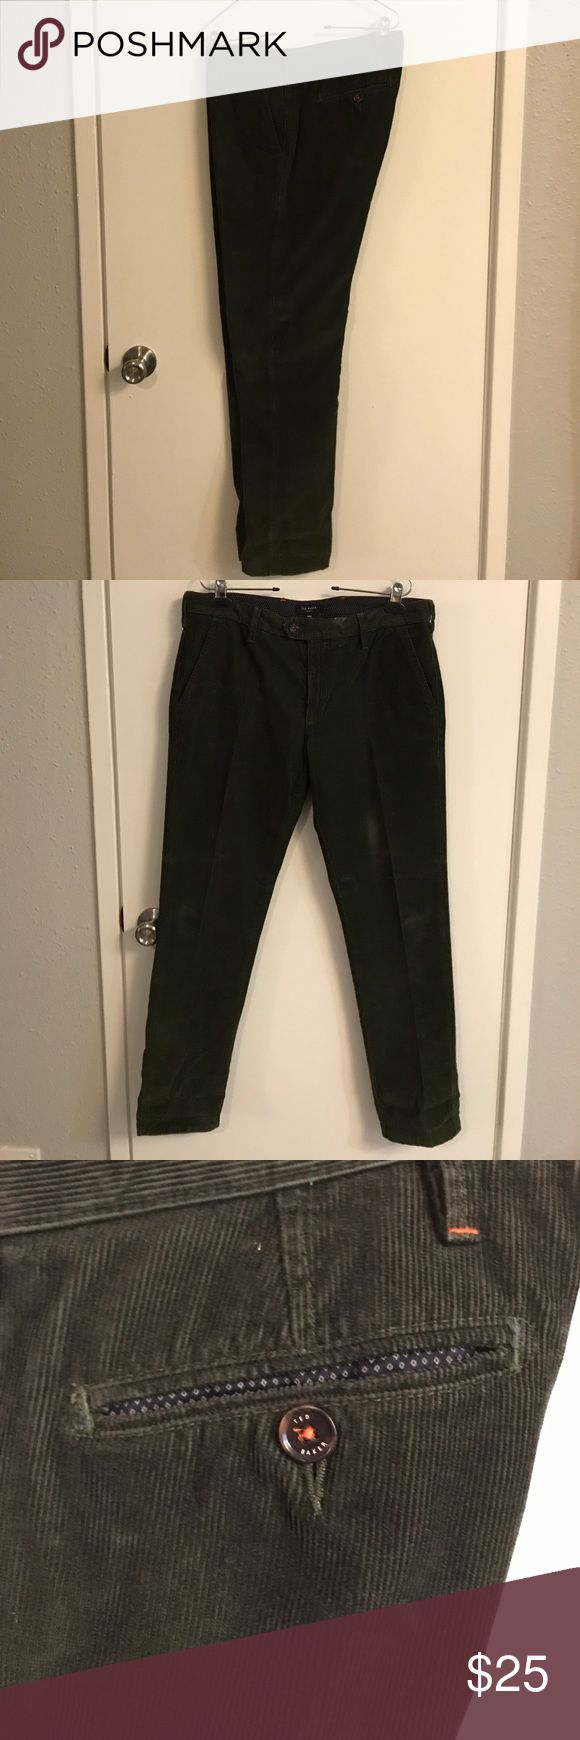 Ted Baker London slim fit cord trousers Slim fit cords in size 34R (34/32) with 7in leg opening (14in all the way around). Two button waist band and zipper fly. Ted Baker London Pants Chinos & Khakis